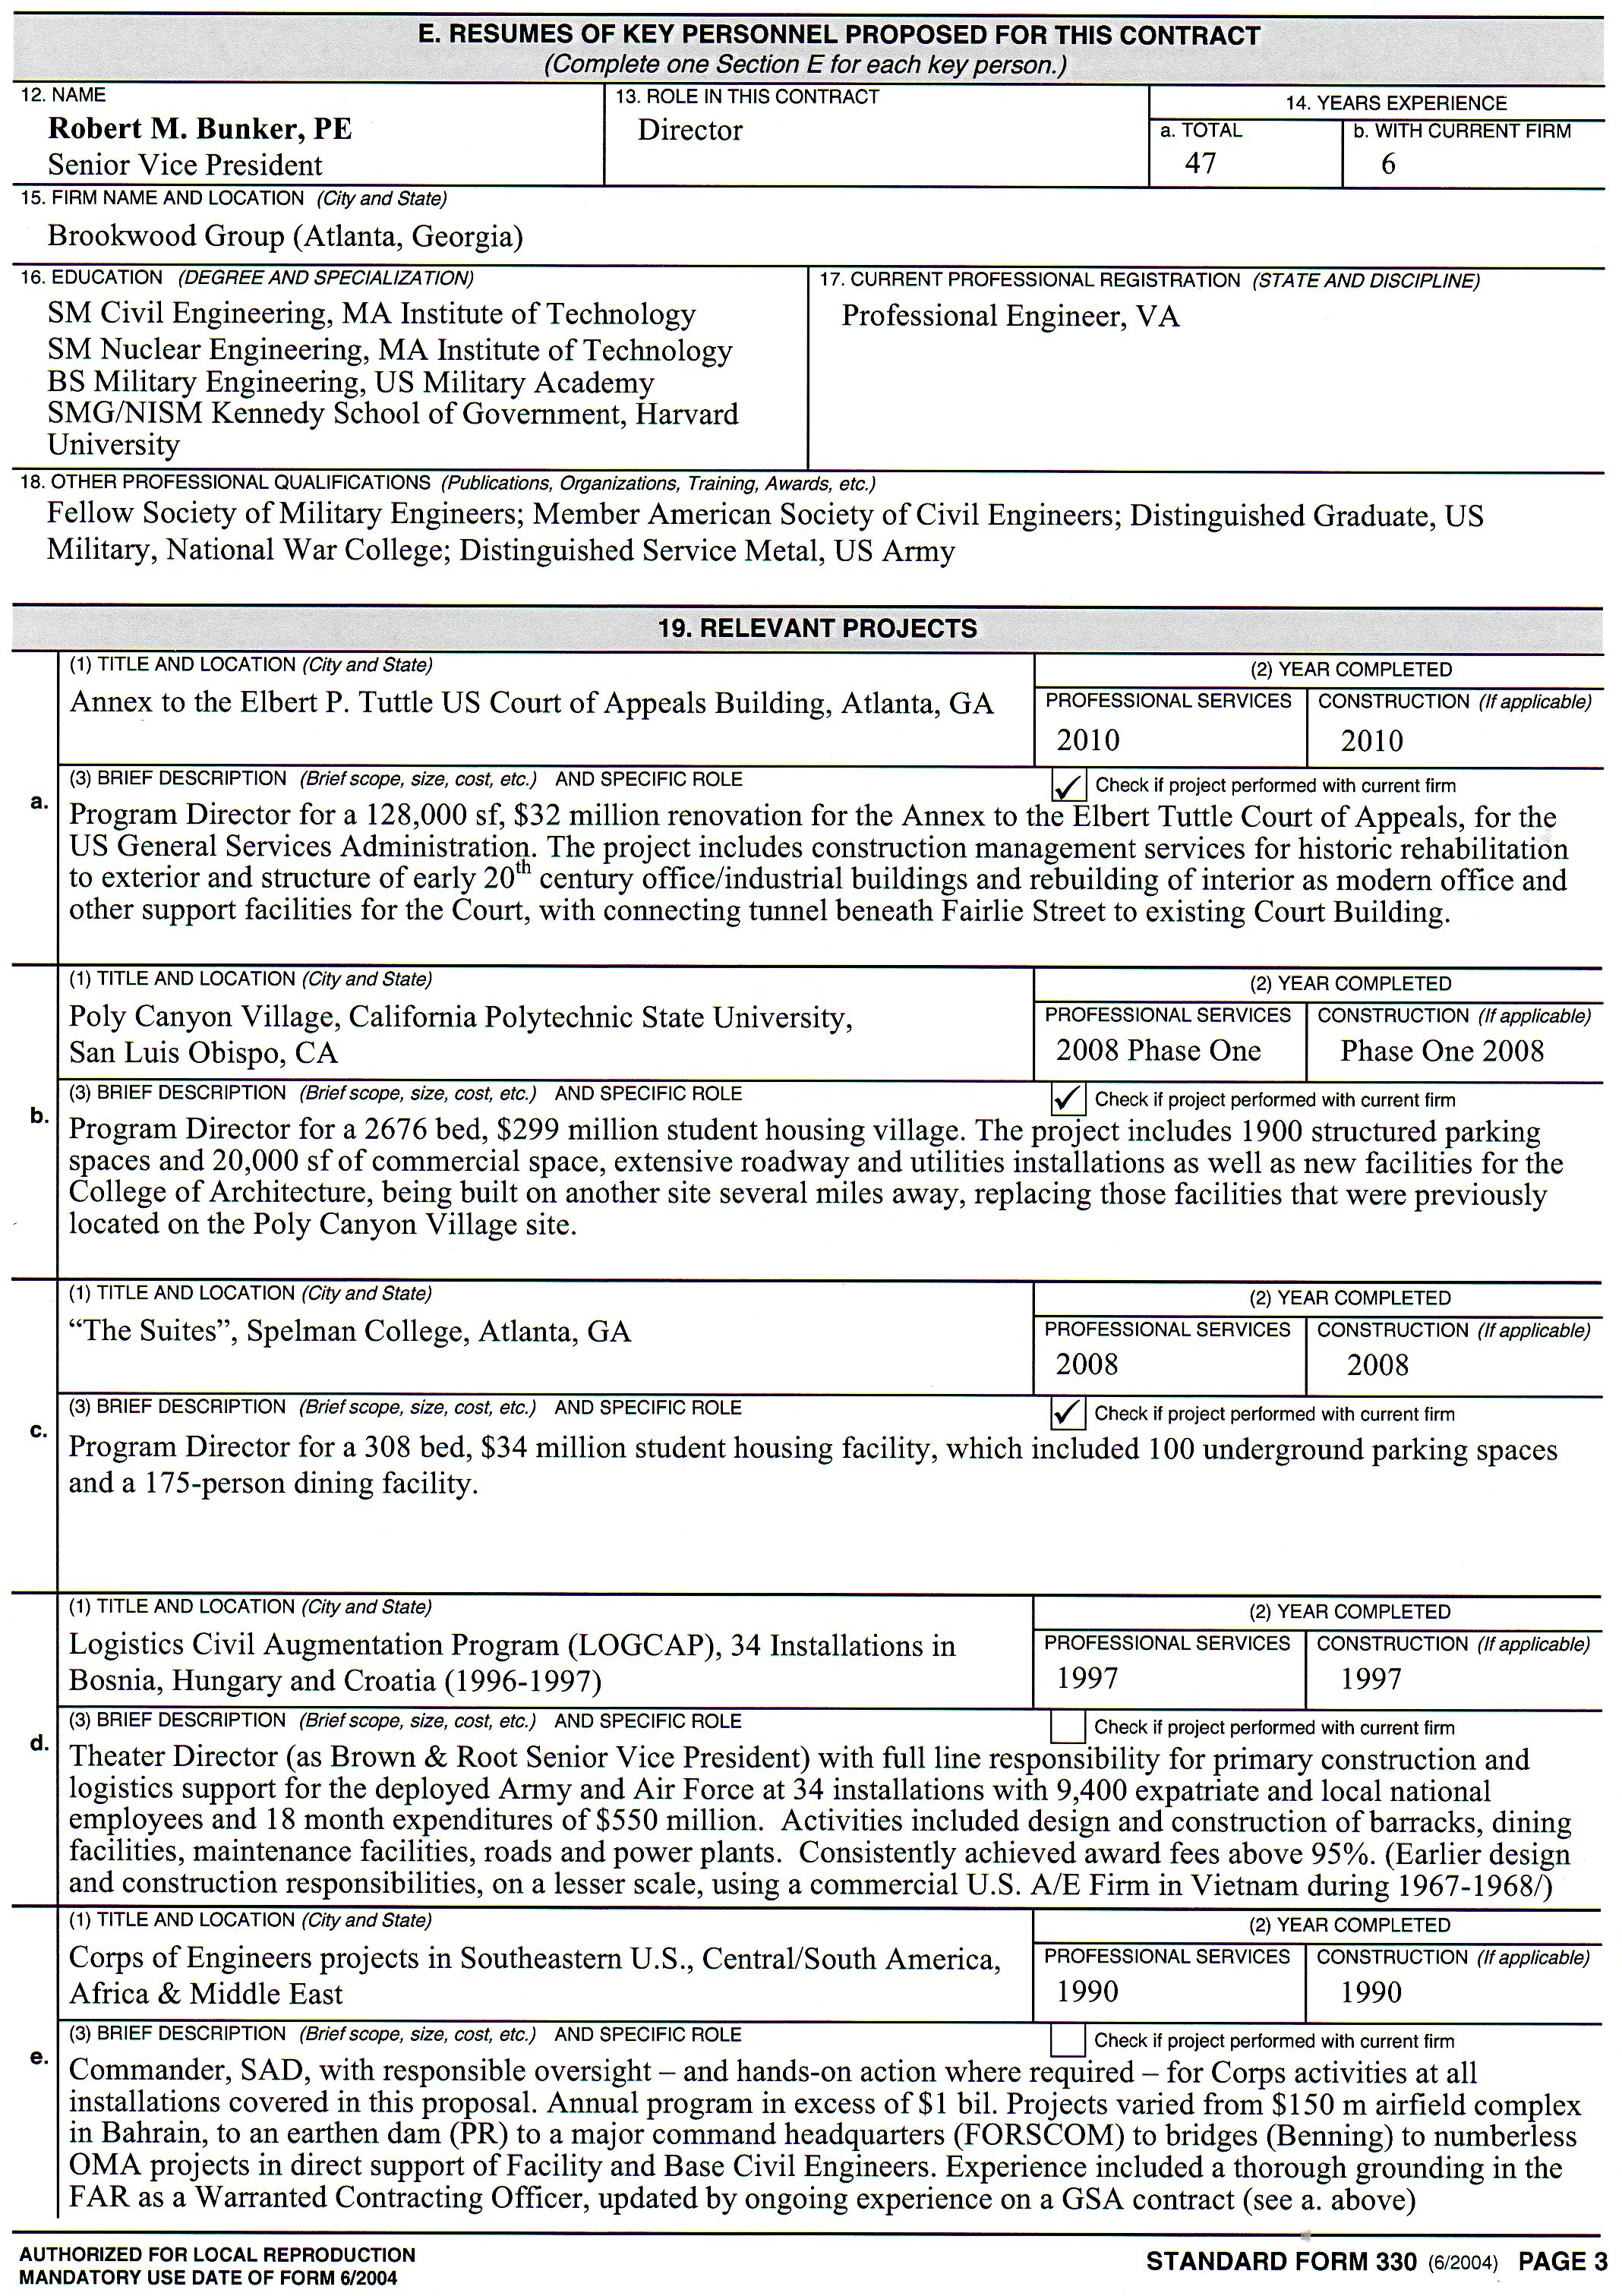 R M Bunker Associates - SF 330 Resume